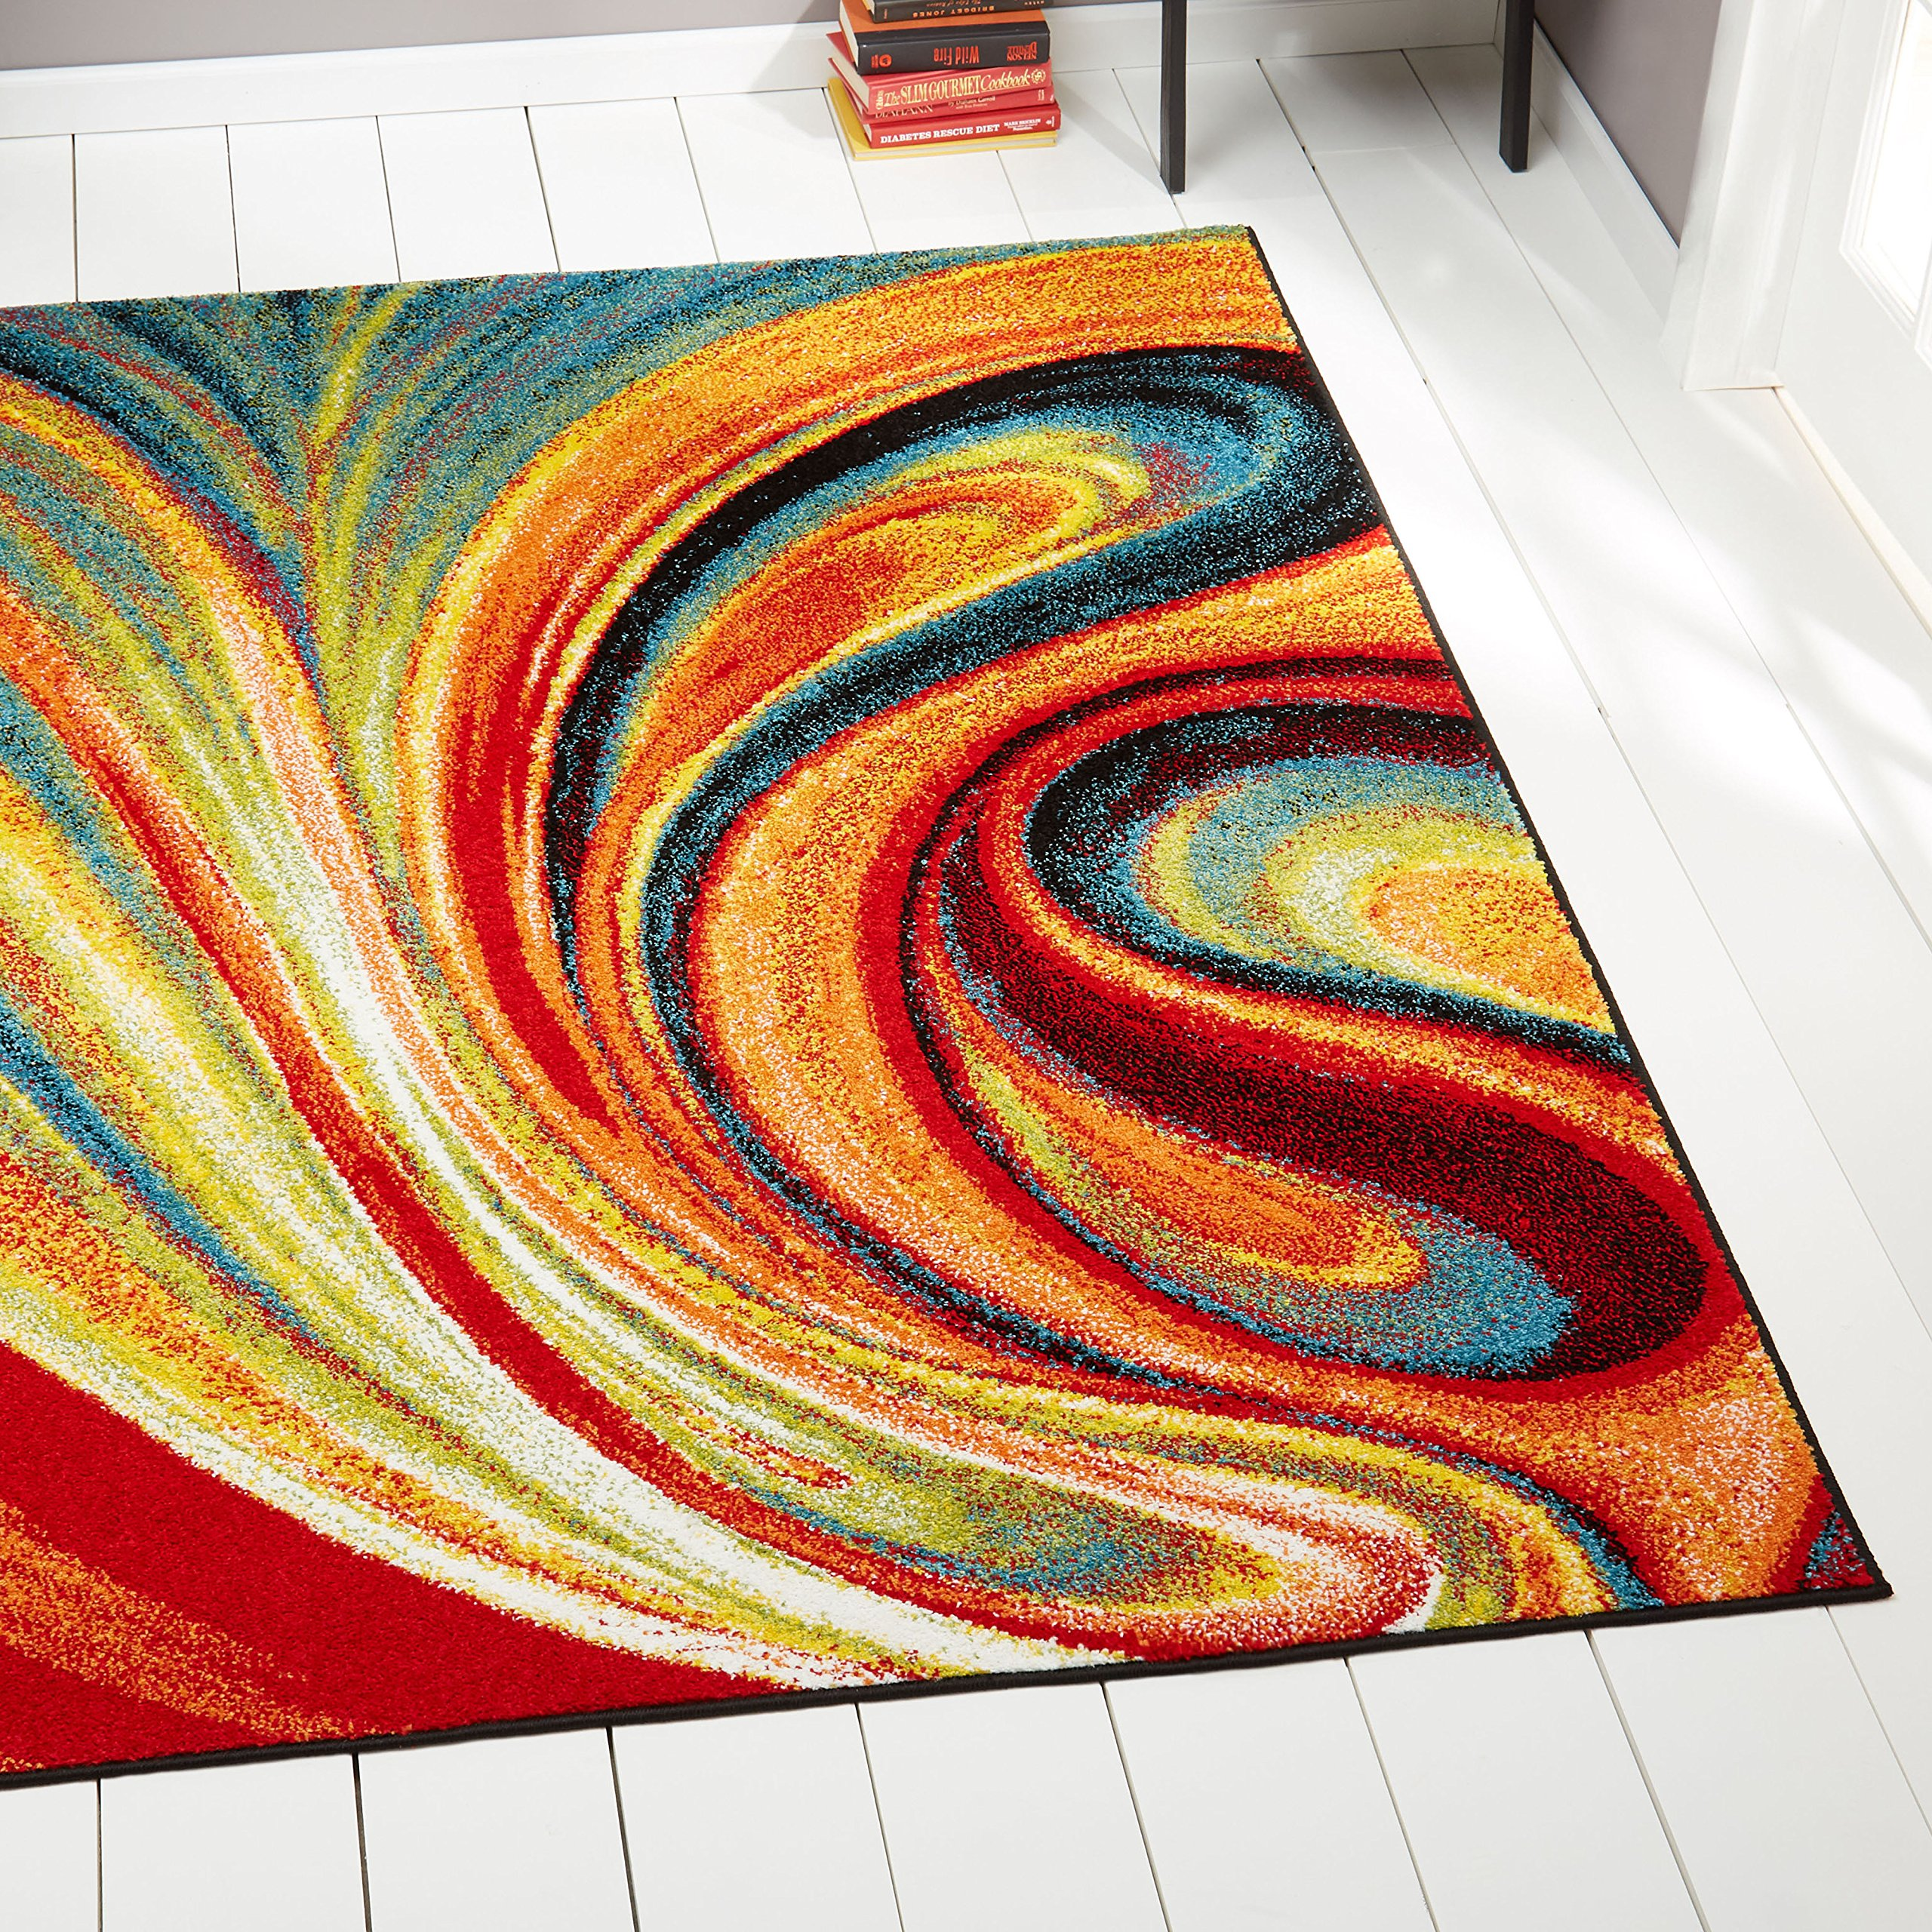 Home Dynamix Splash Adji Area Rug | Contemporary Living Room Rug | Abstract Brushstrokes | Bold and Vibrant Palette | Red, Blue Green 3'3'' x4'3